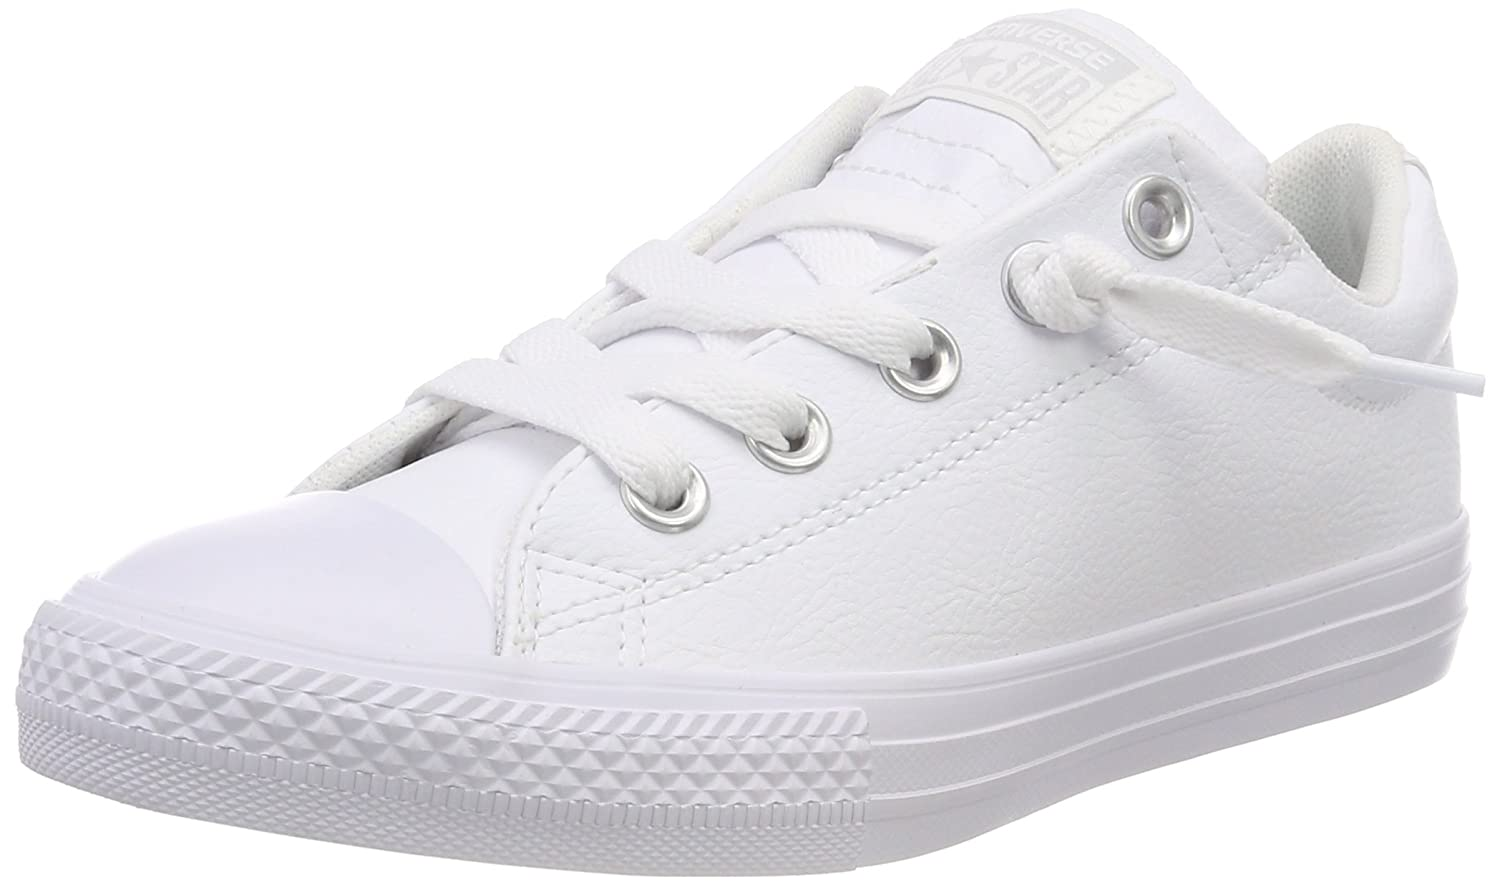 Converse Kids Chuck Taylor All Star Street Slip on Low Top Sneaker 662341F